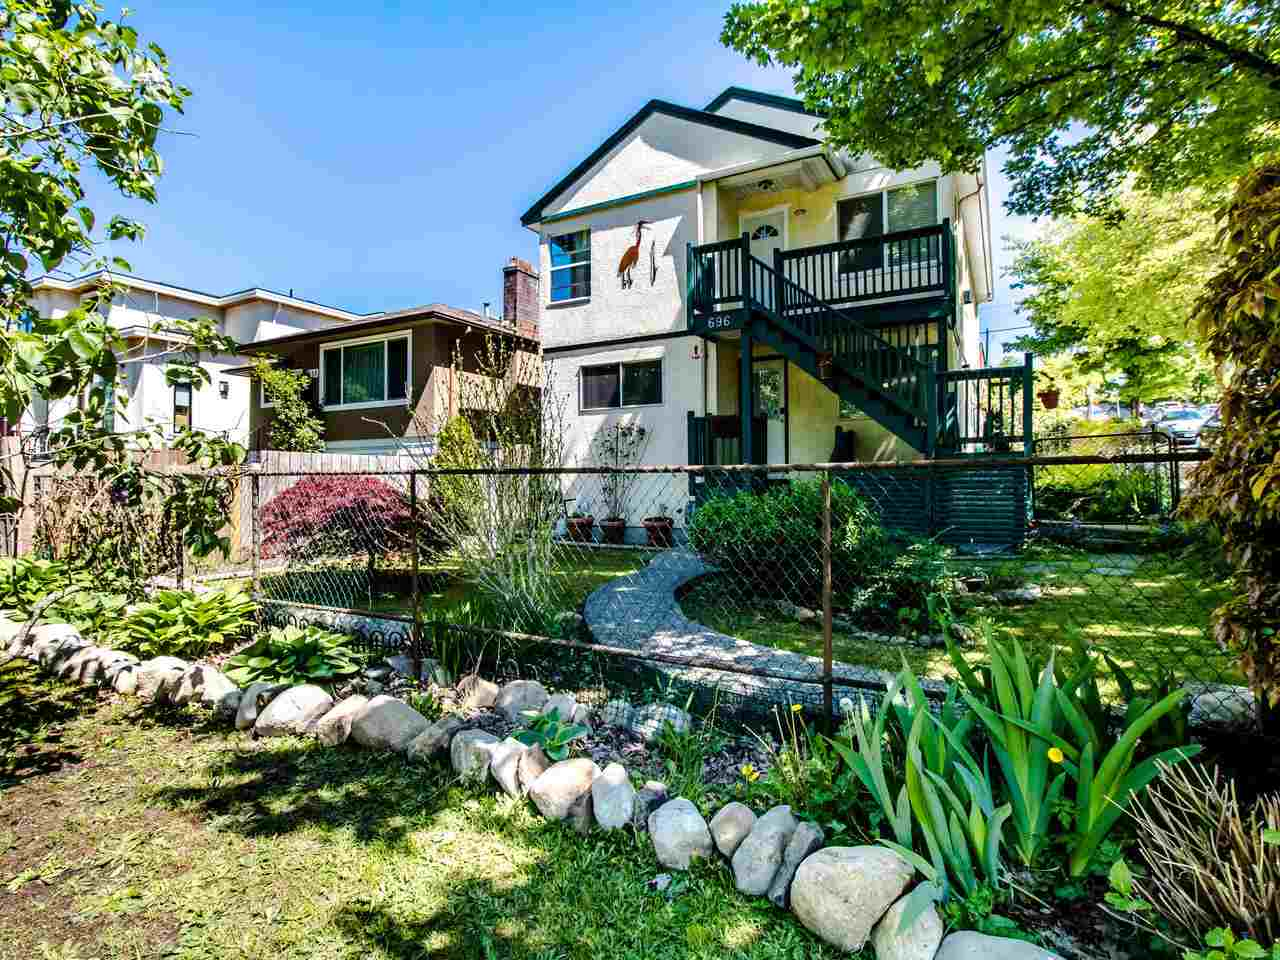 Home for sale in Renfrew: 696 Rupert Street